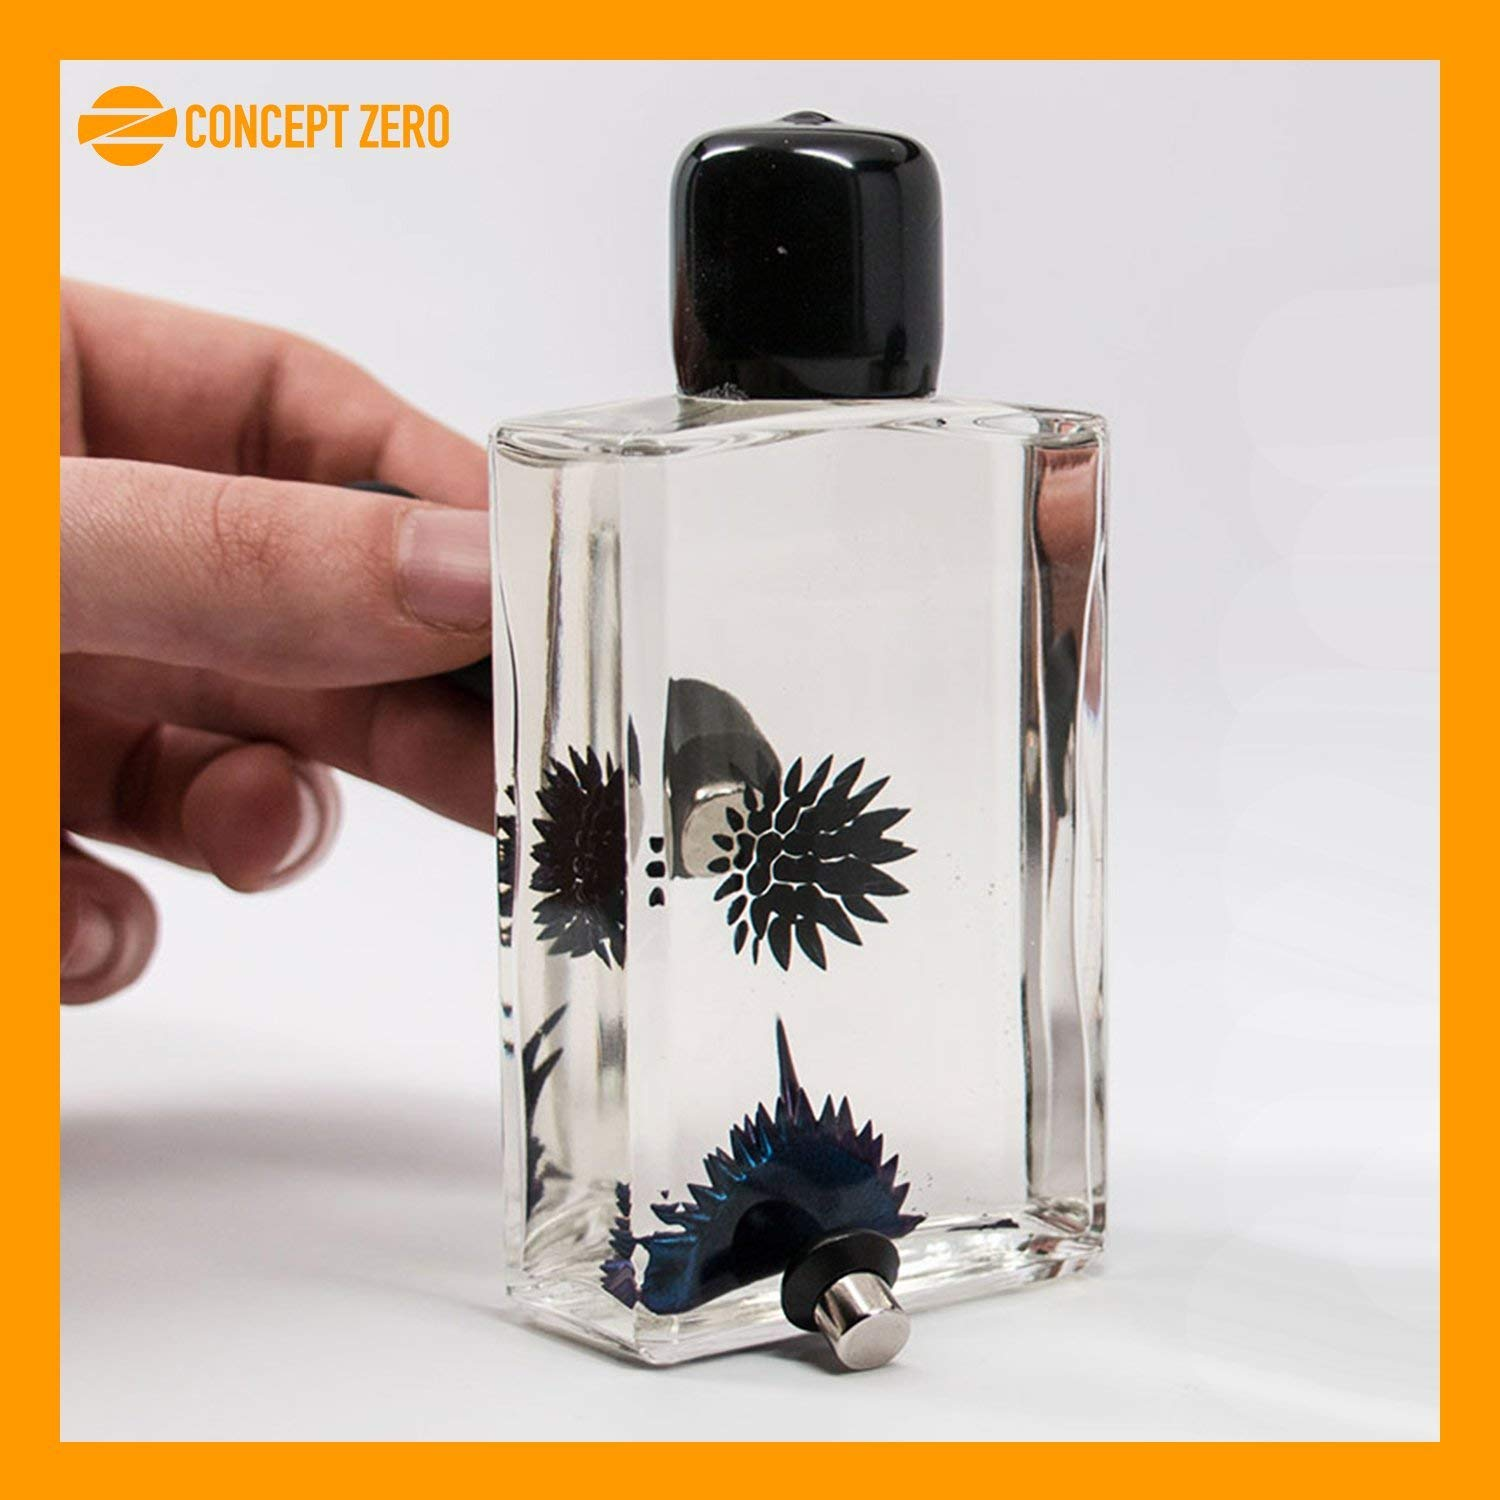 Squared | Genuine Concept Zero Ferrofluid Display